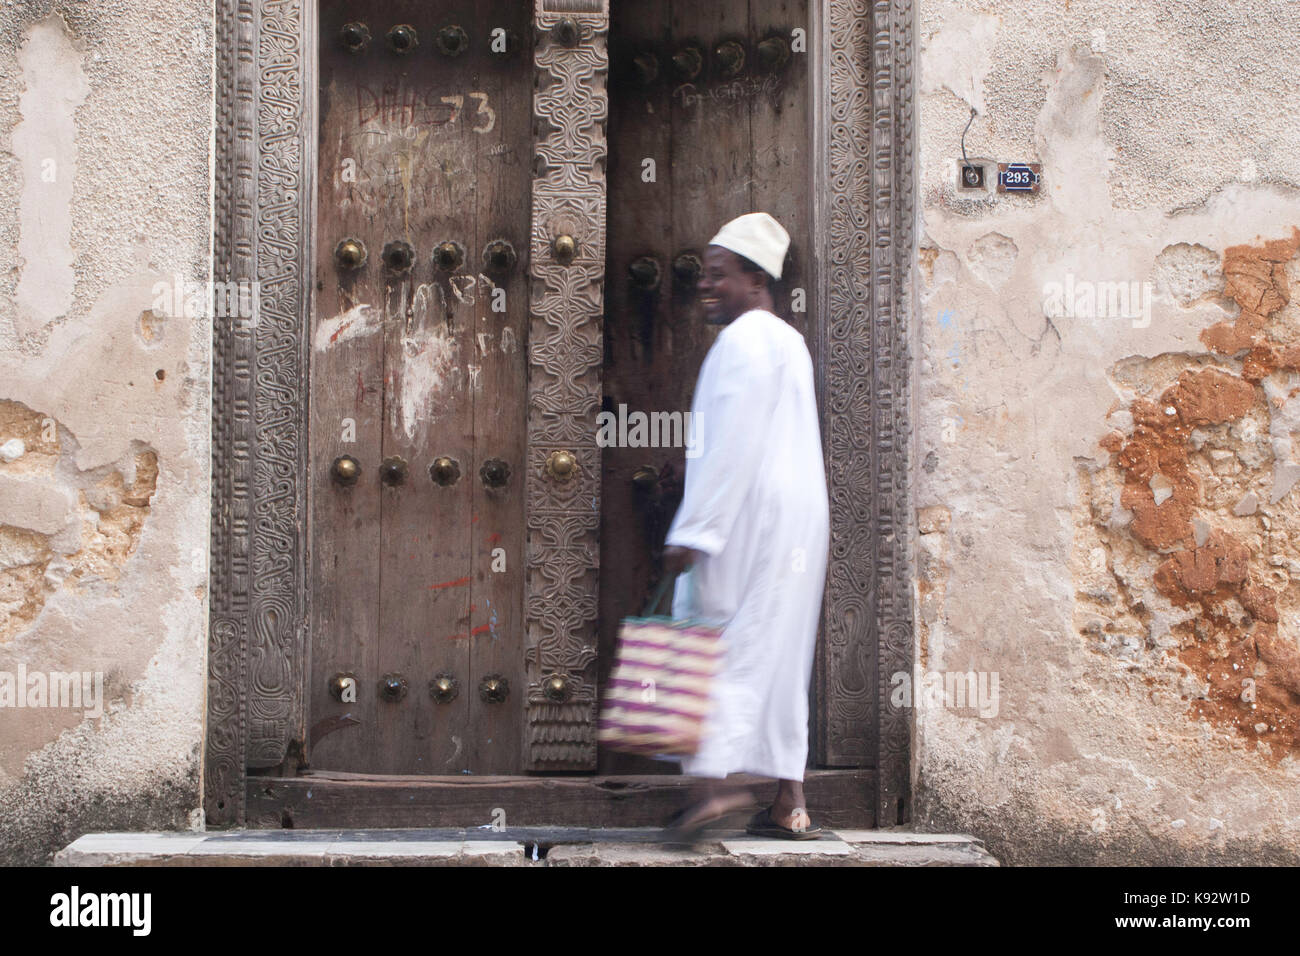 A man in traditional dress walking though an ornate carved wood door, Stone Town, Zanzibar, Tanzania, East Africa Stock Photo